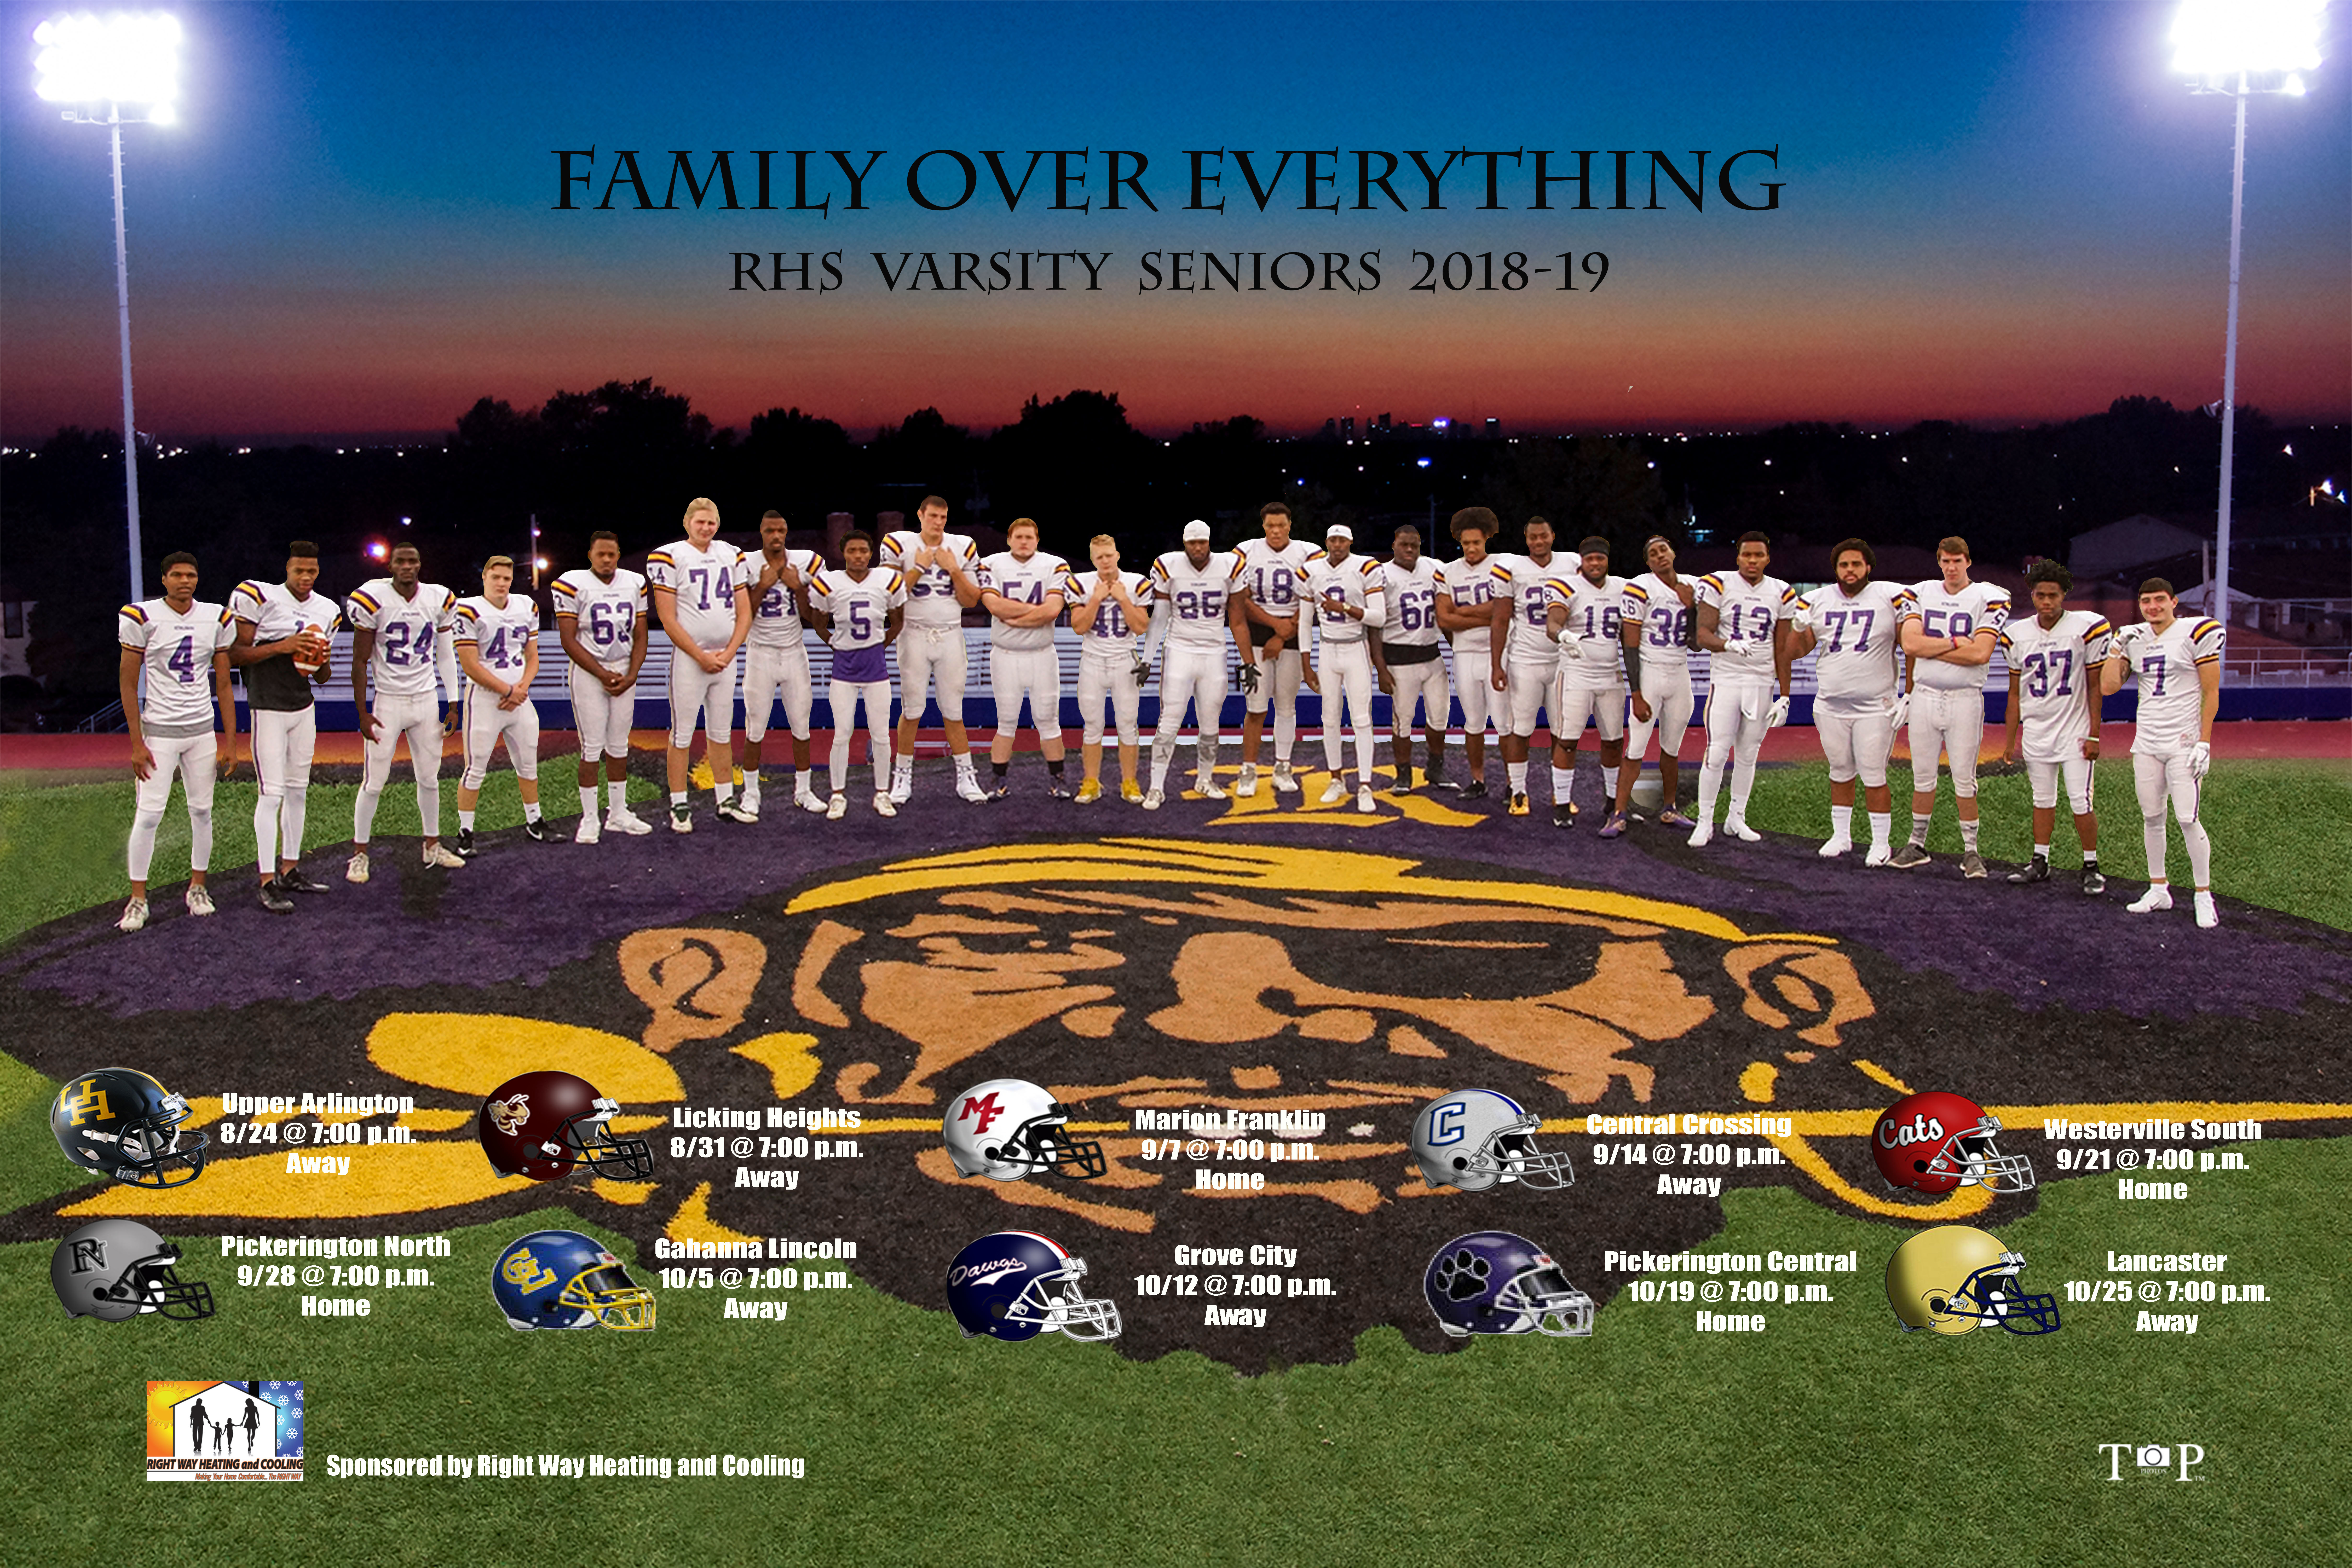 Raider Football rewrote the history books in 2018